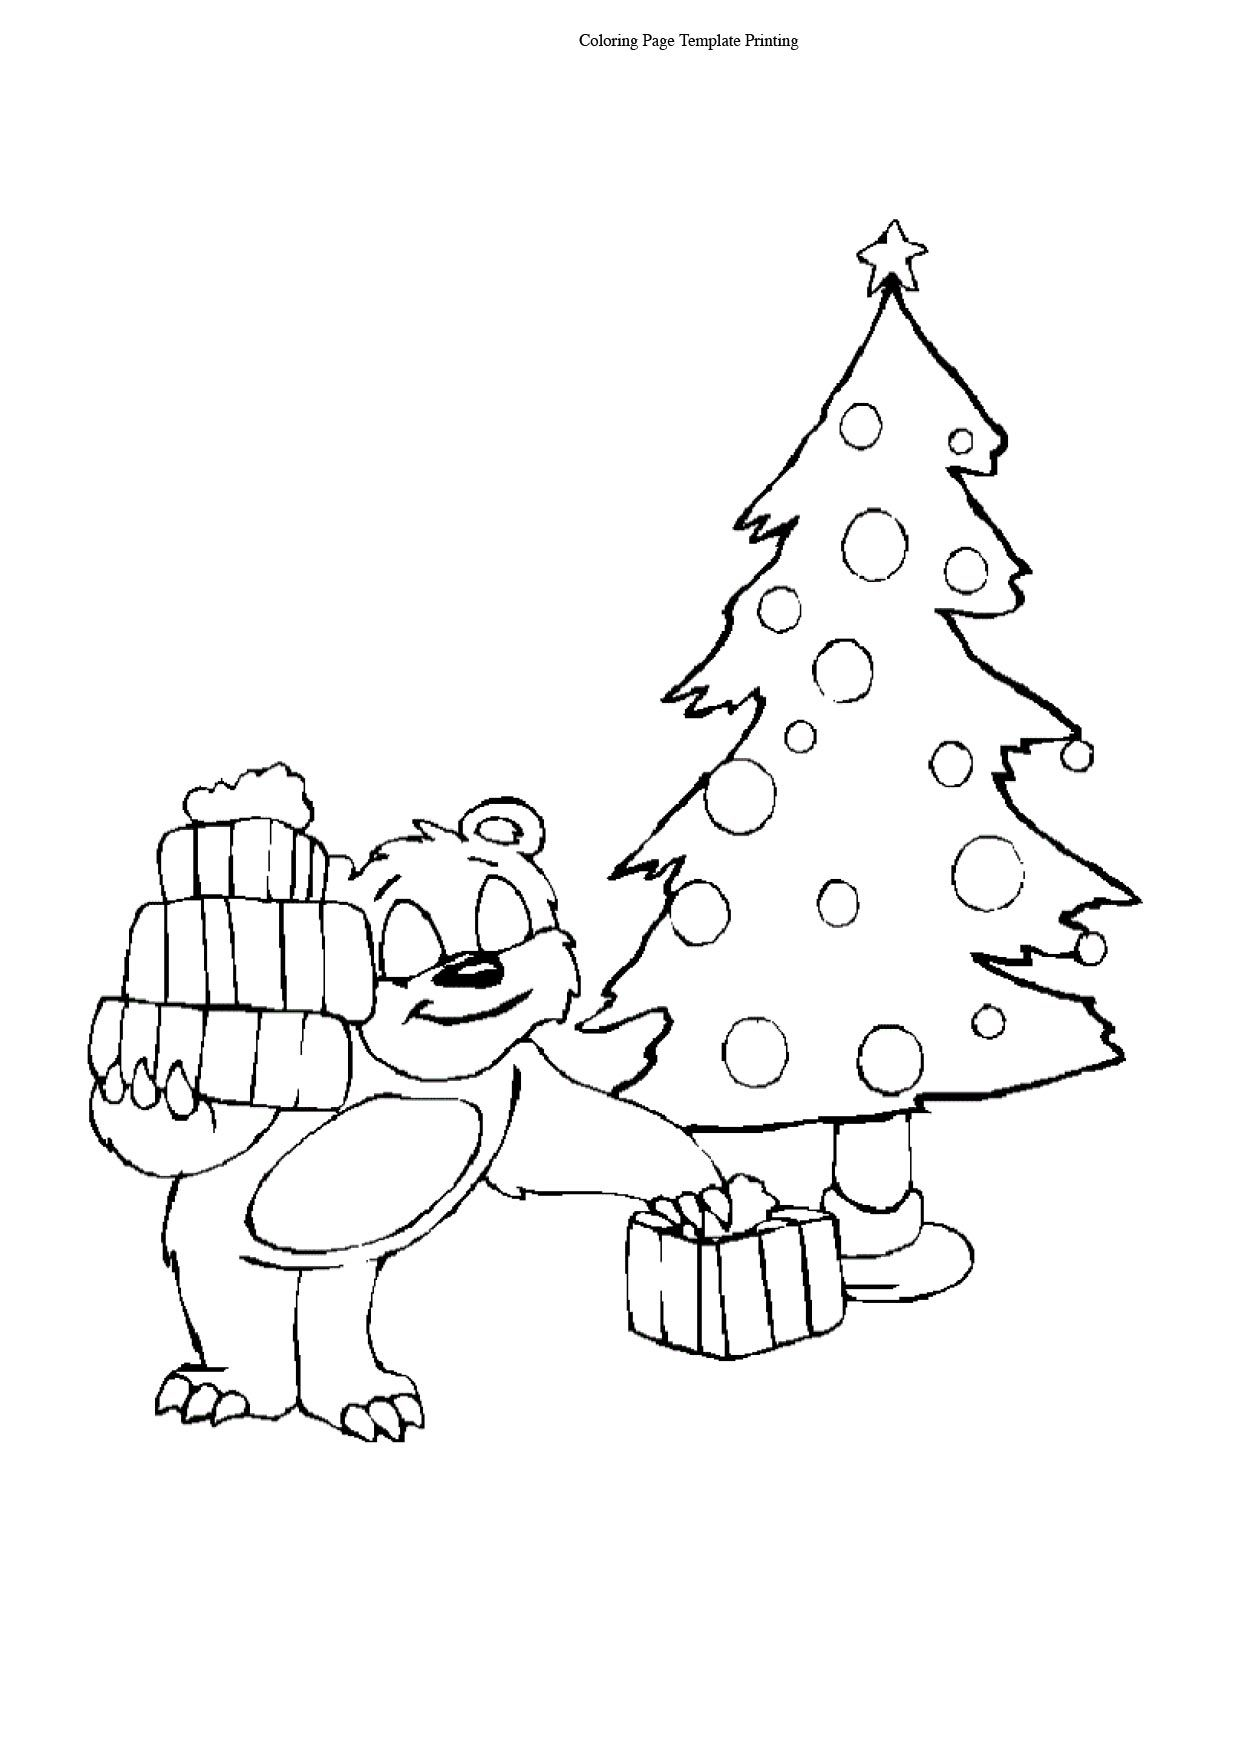 Christmas Tree Gifting coloring pages